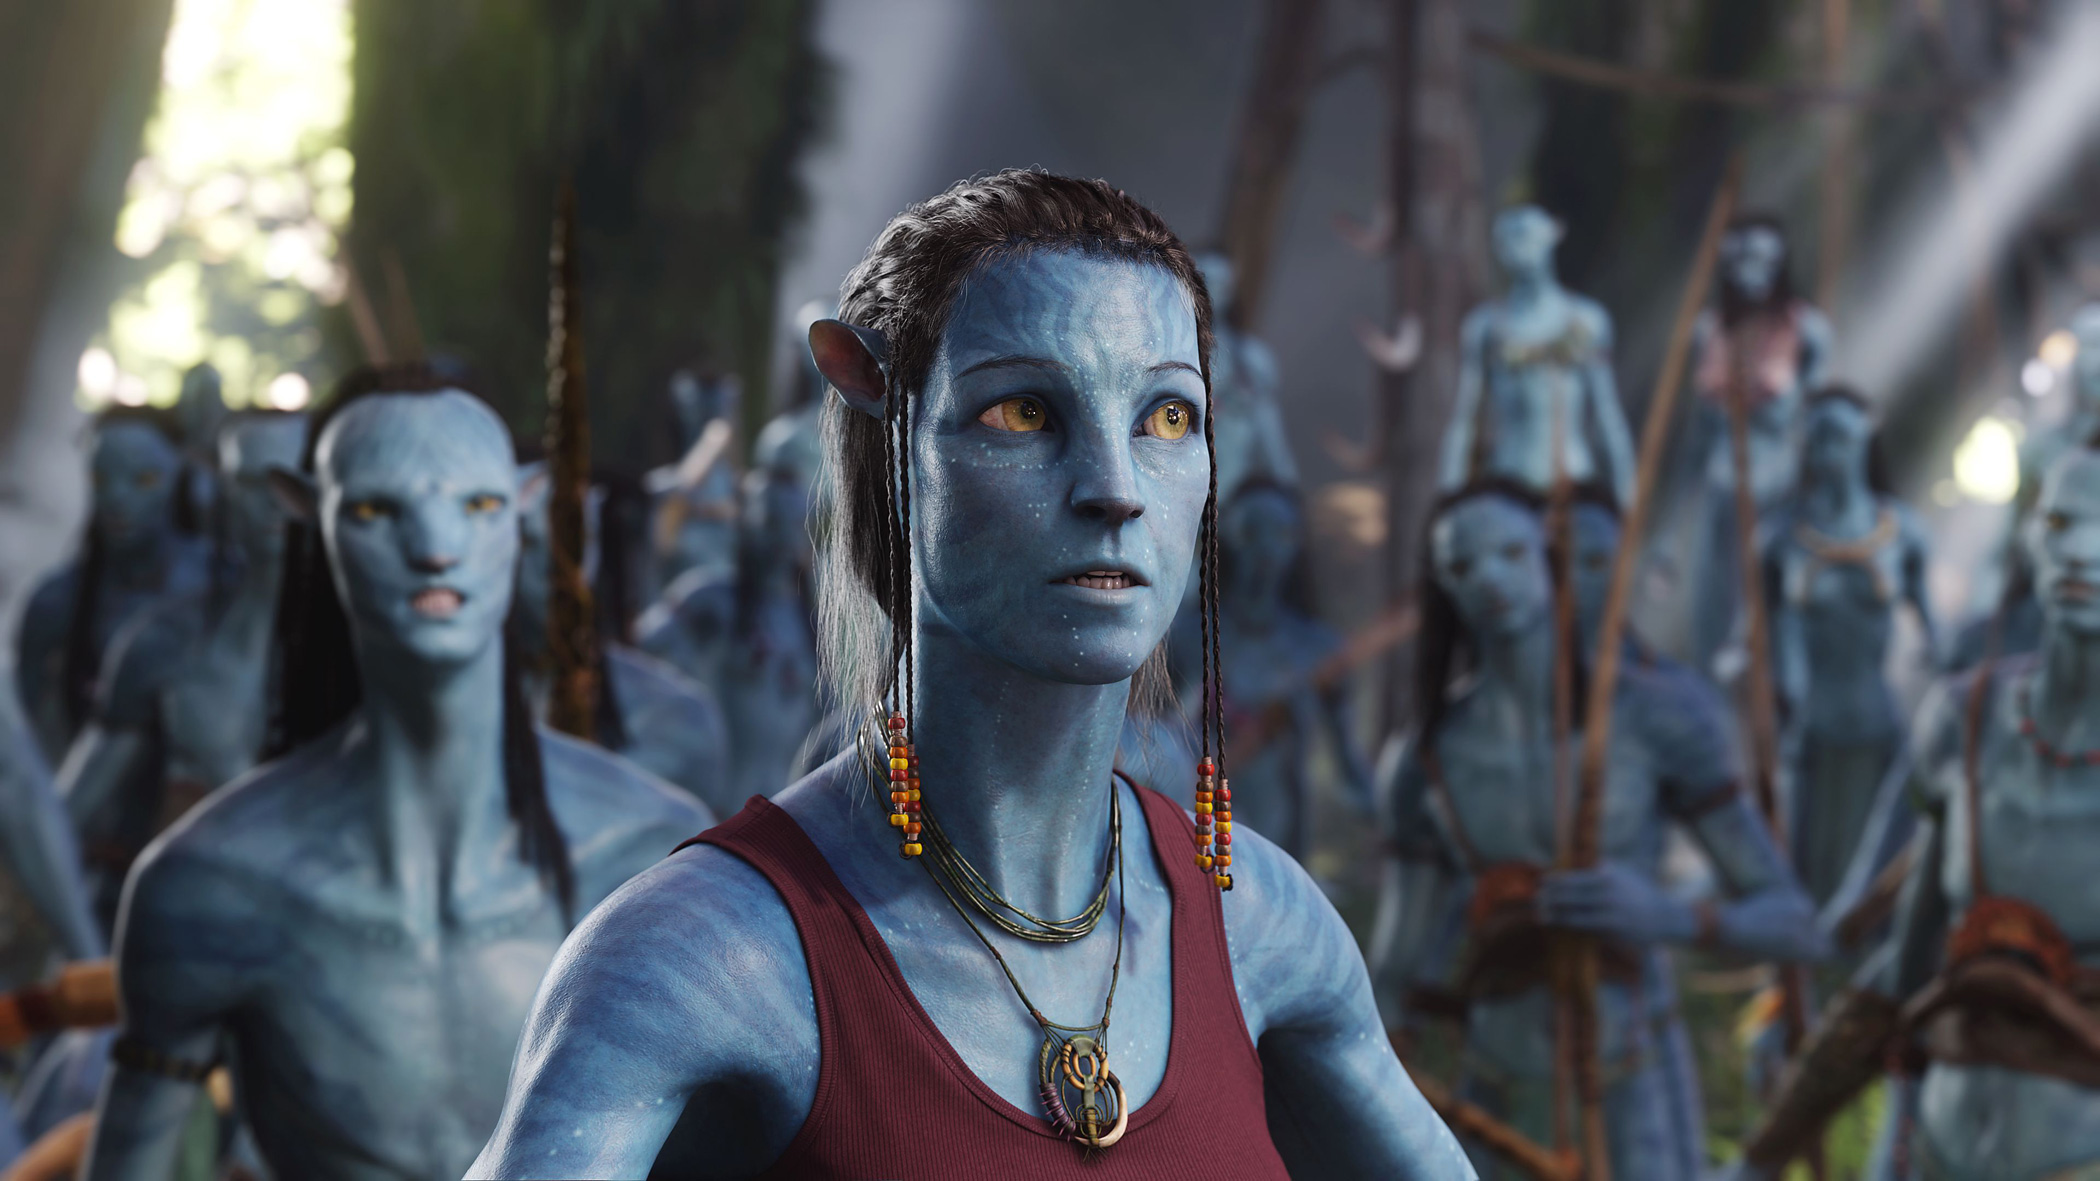 Though Weaver's character, Dr. Grace Augustine, died at the end of 2009's Avatar, the actress will come back as a different character in the upcoming sequels.